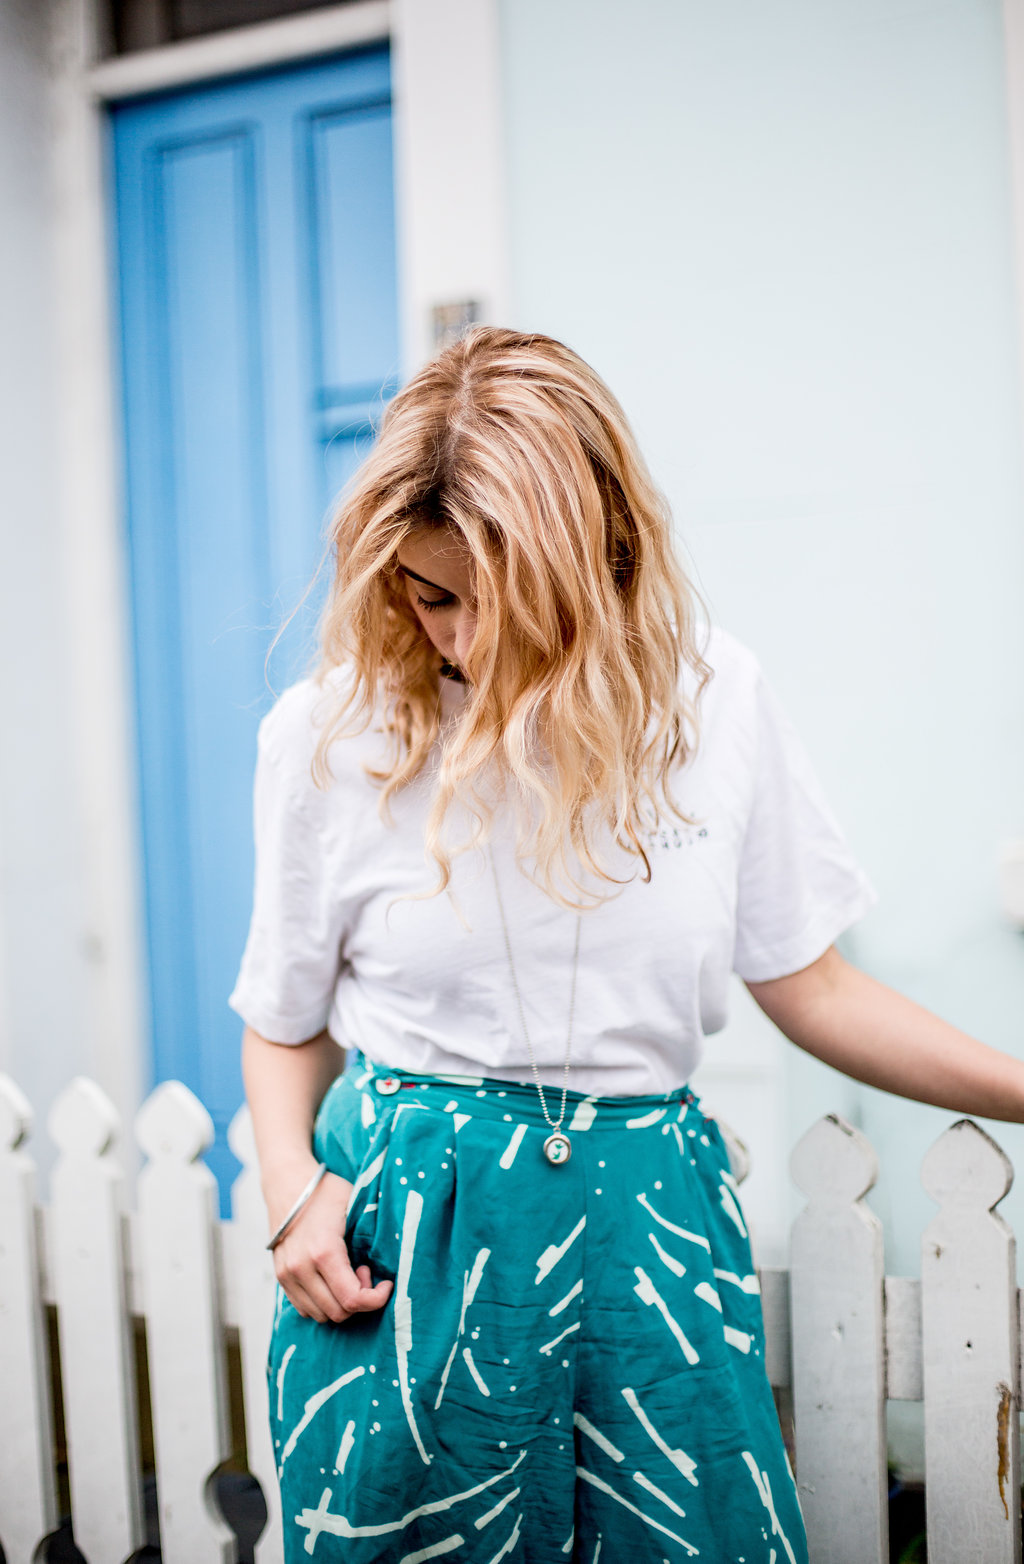 Bold, artistic teal pants with a neutral tee  // A Week Of Vibrant & Global Outfits With Francesca Willow From Ethical Unicorn on The Good Trade